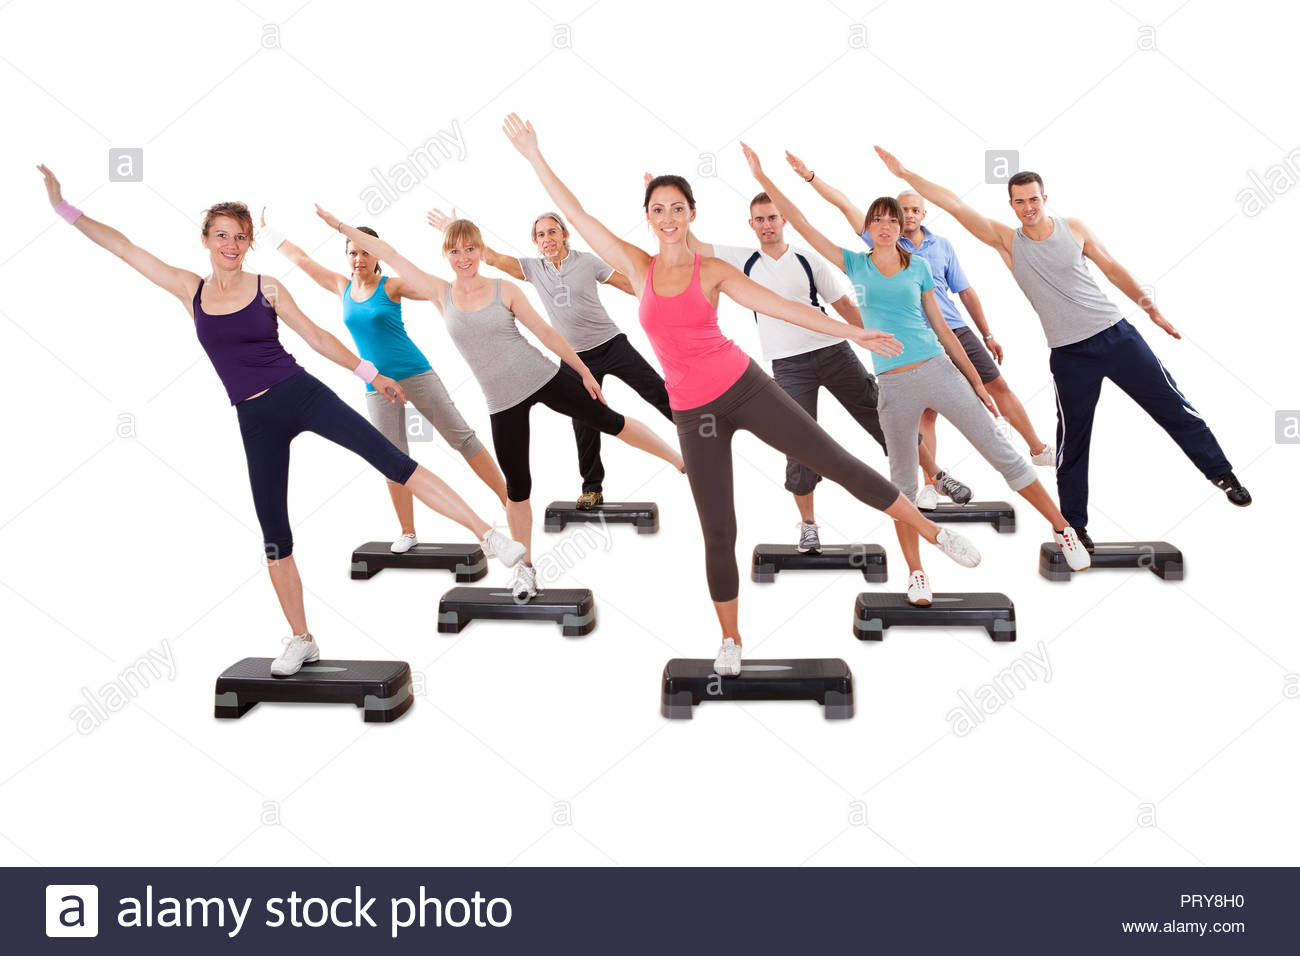 Group Of Fit People Doing Stretching Exercise On White Background 1300x956